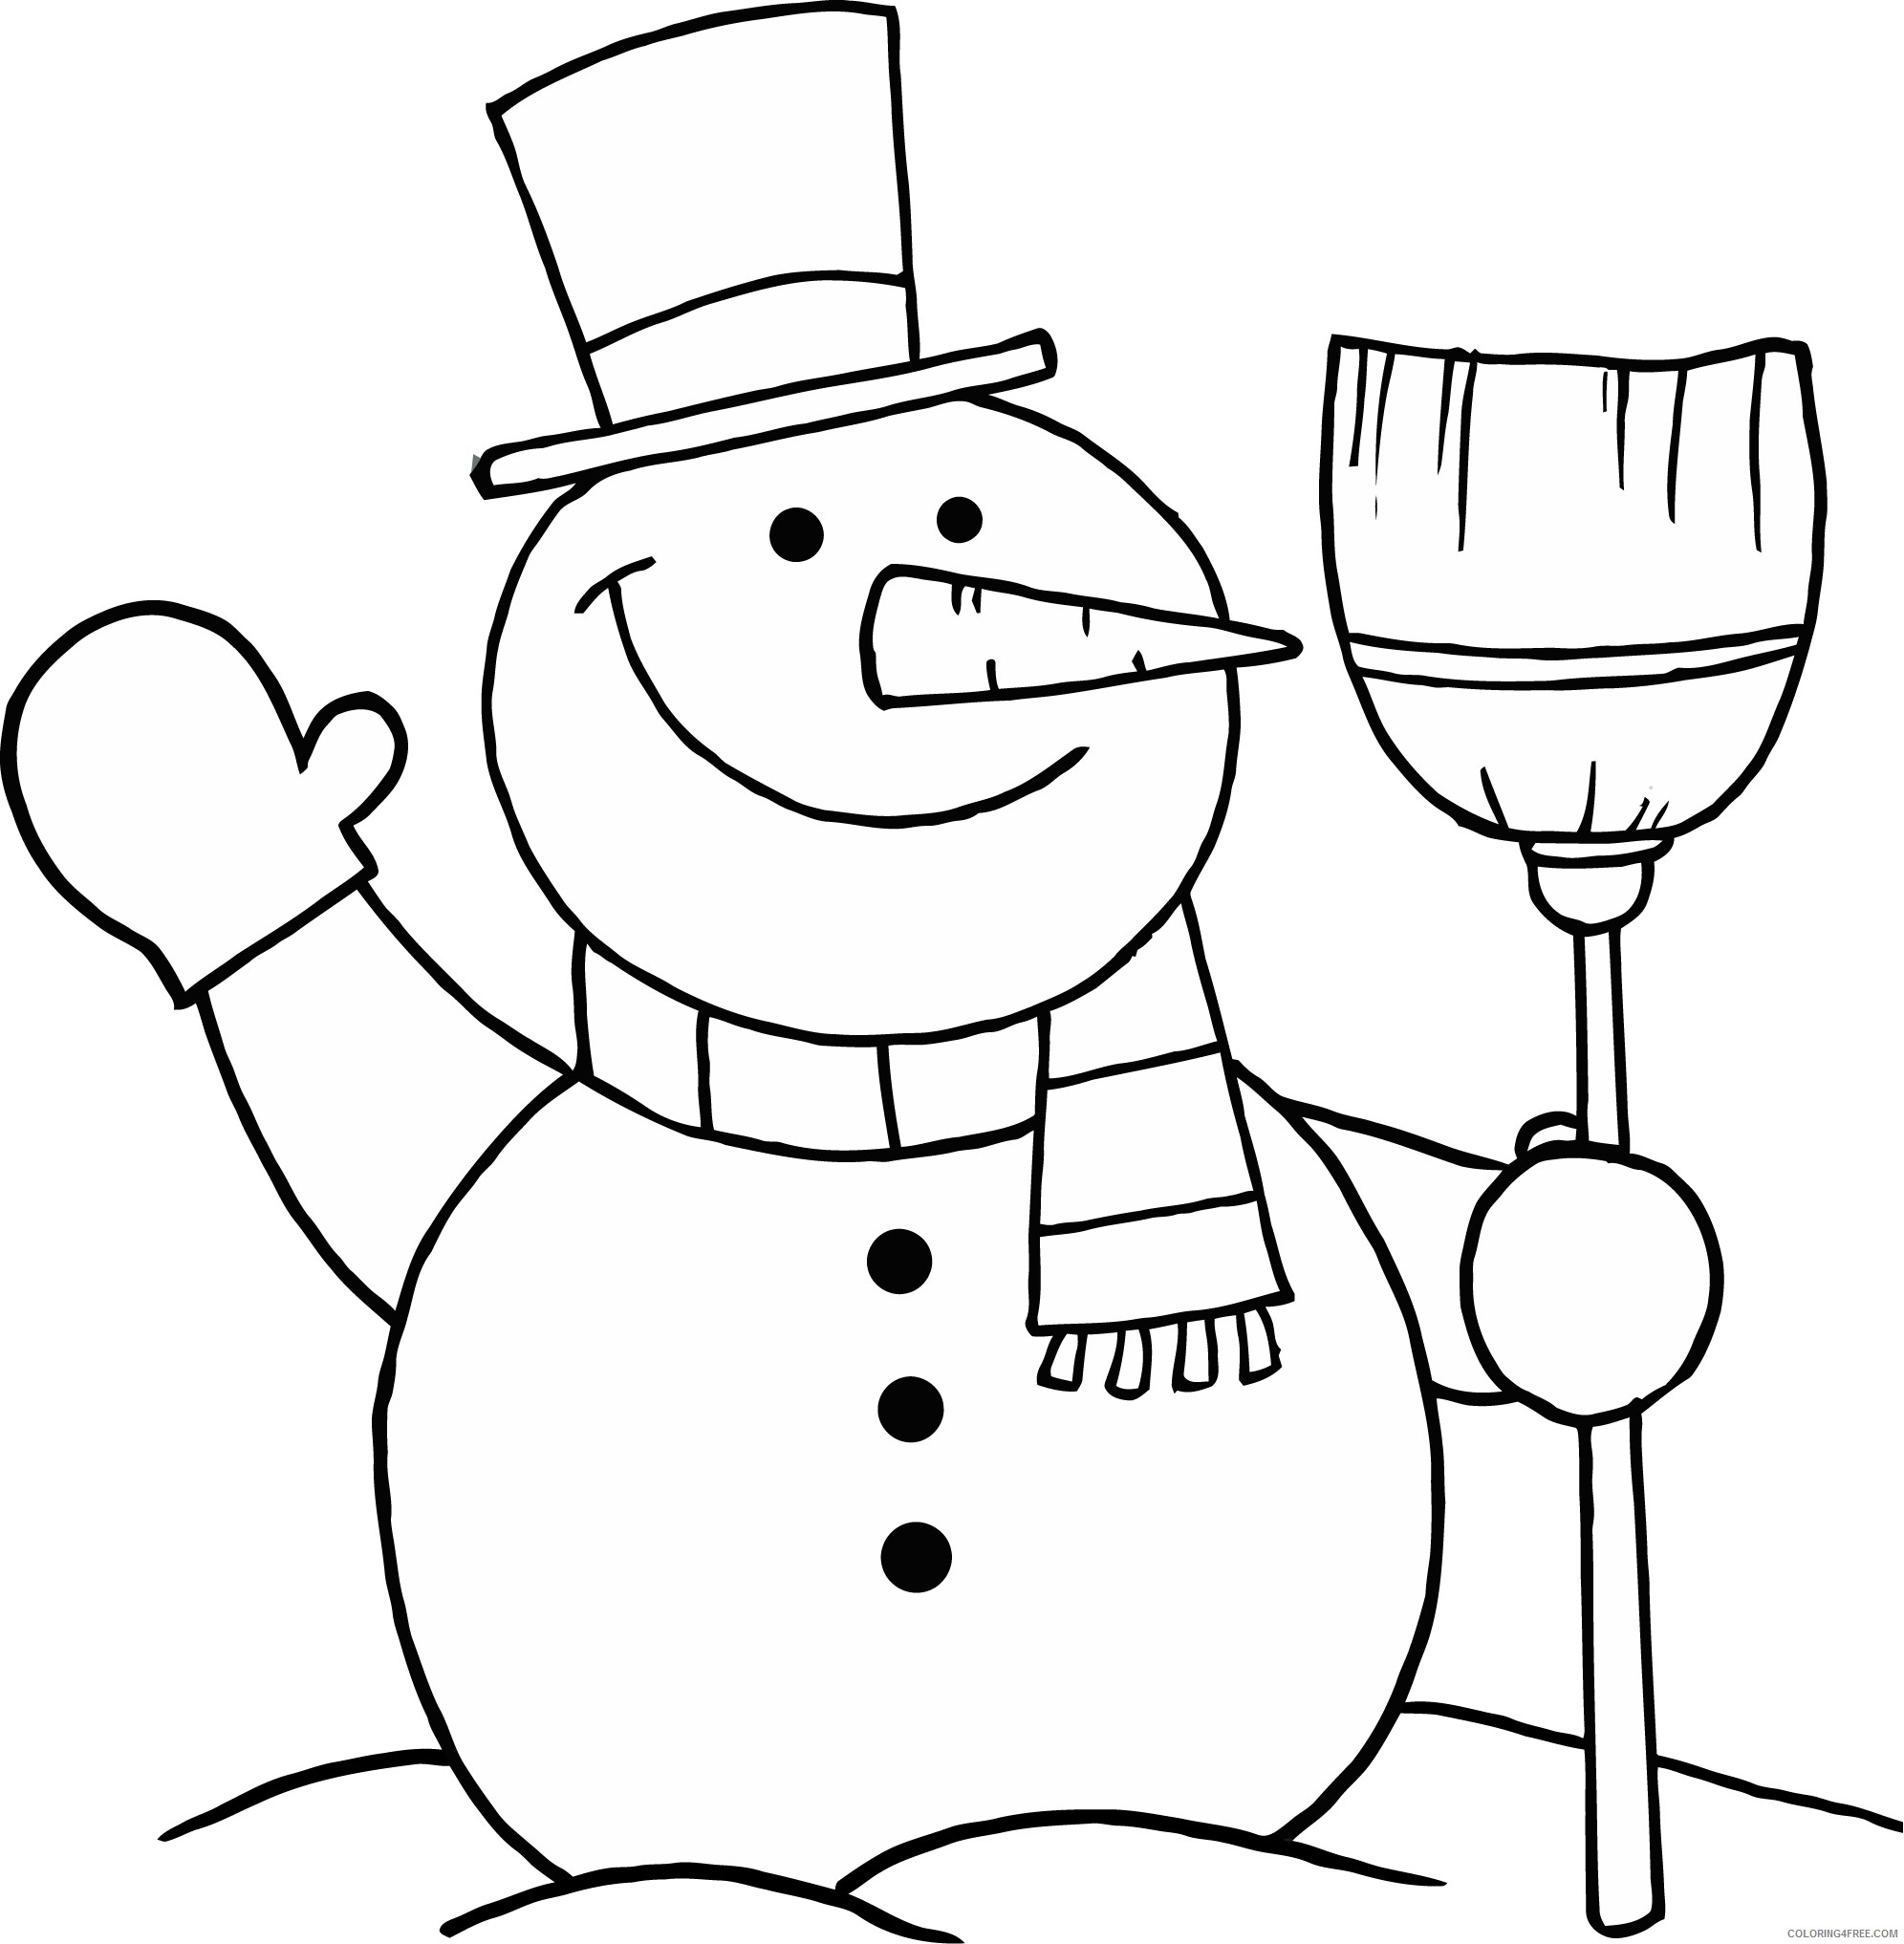 snowman coloring pages with broom Coloring4free